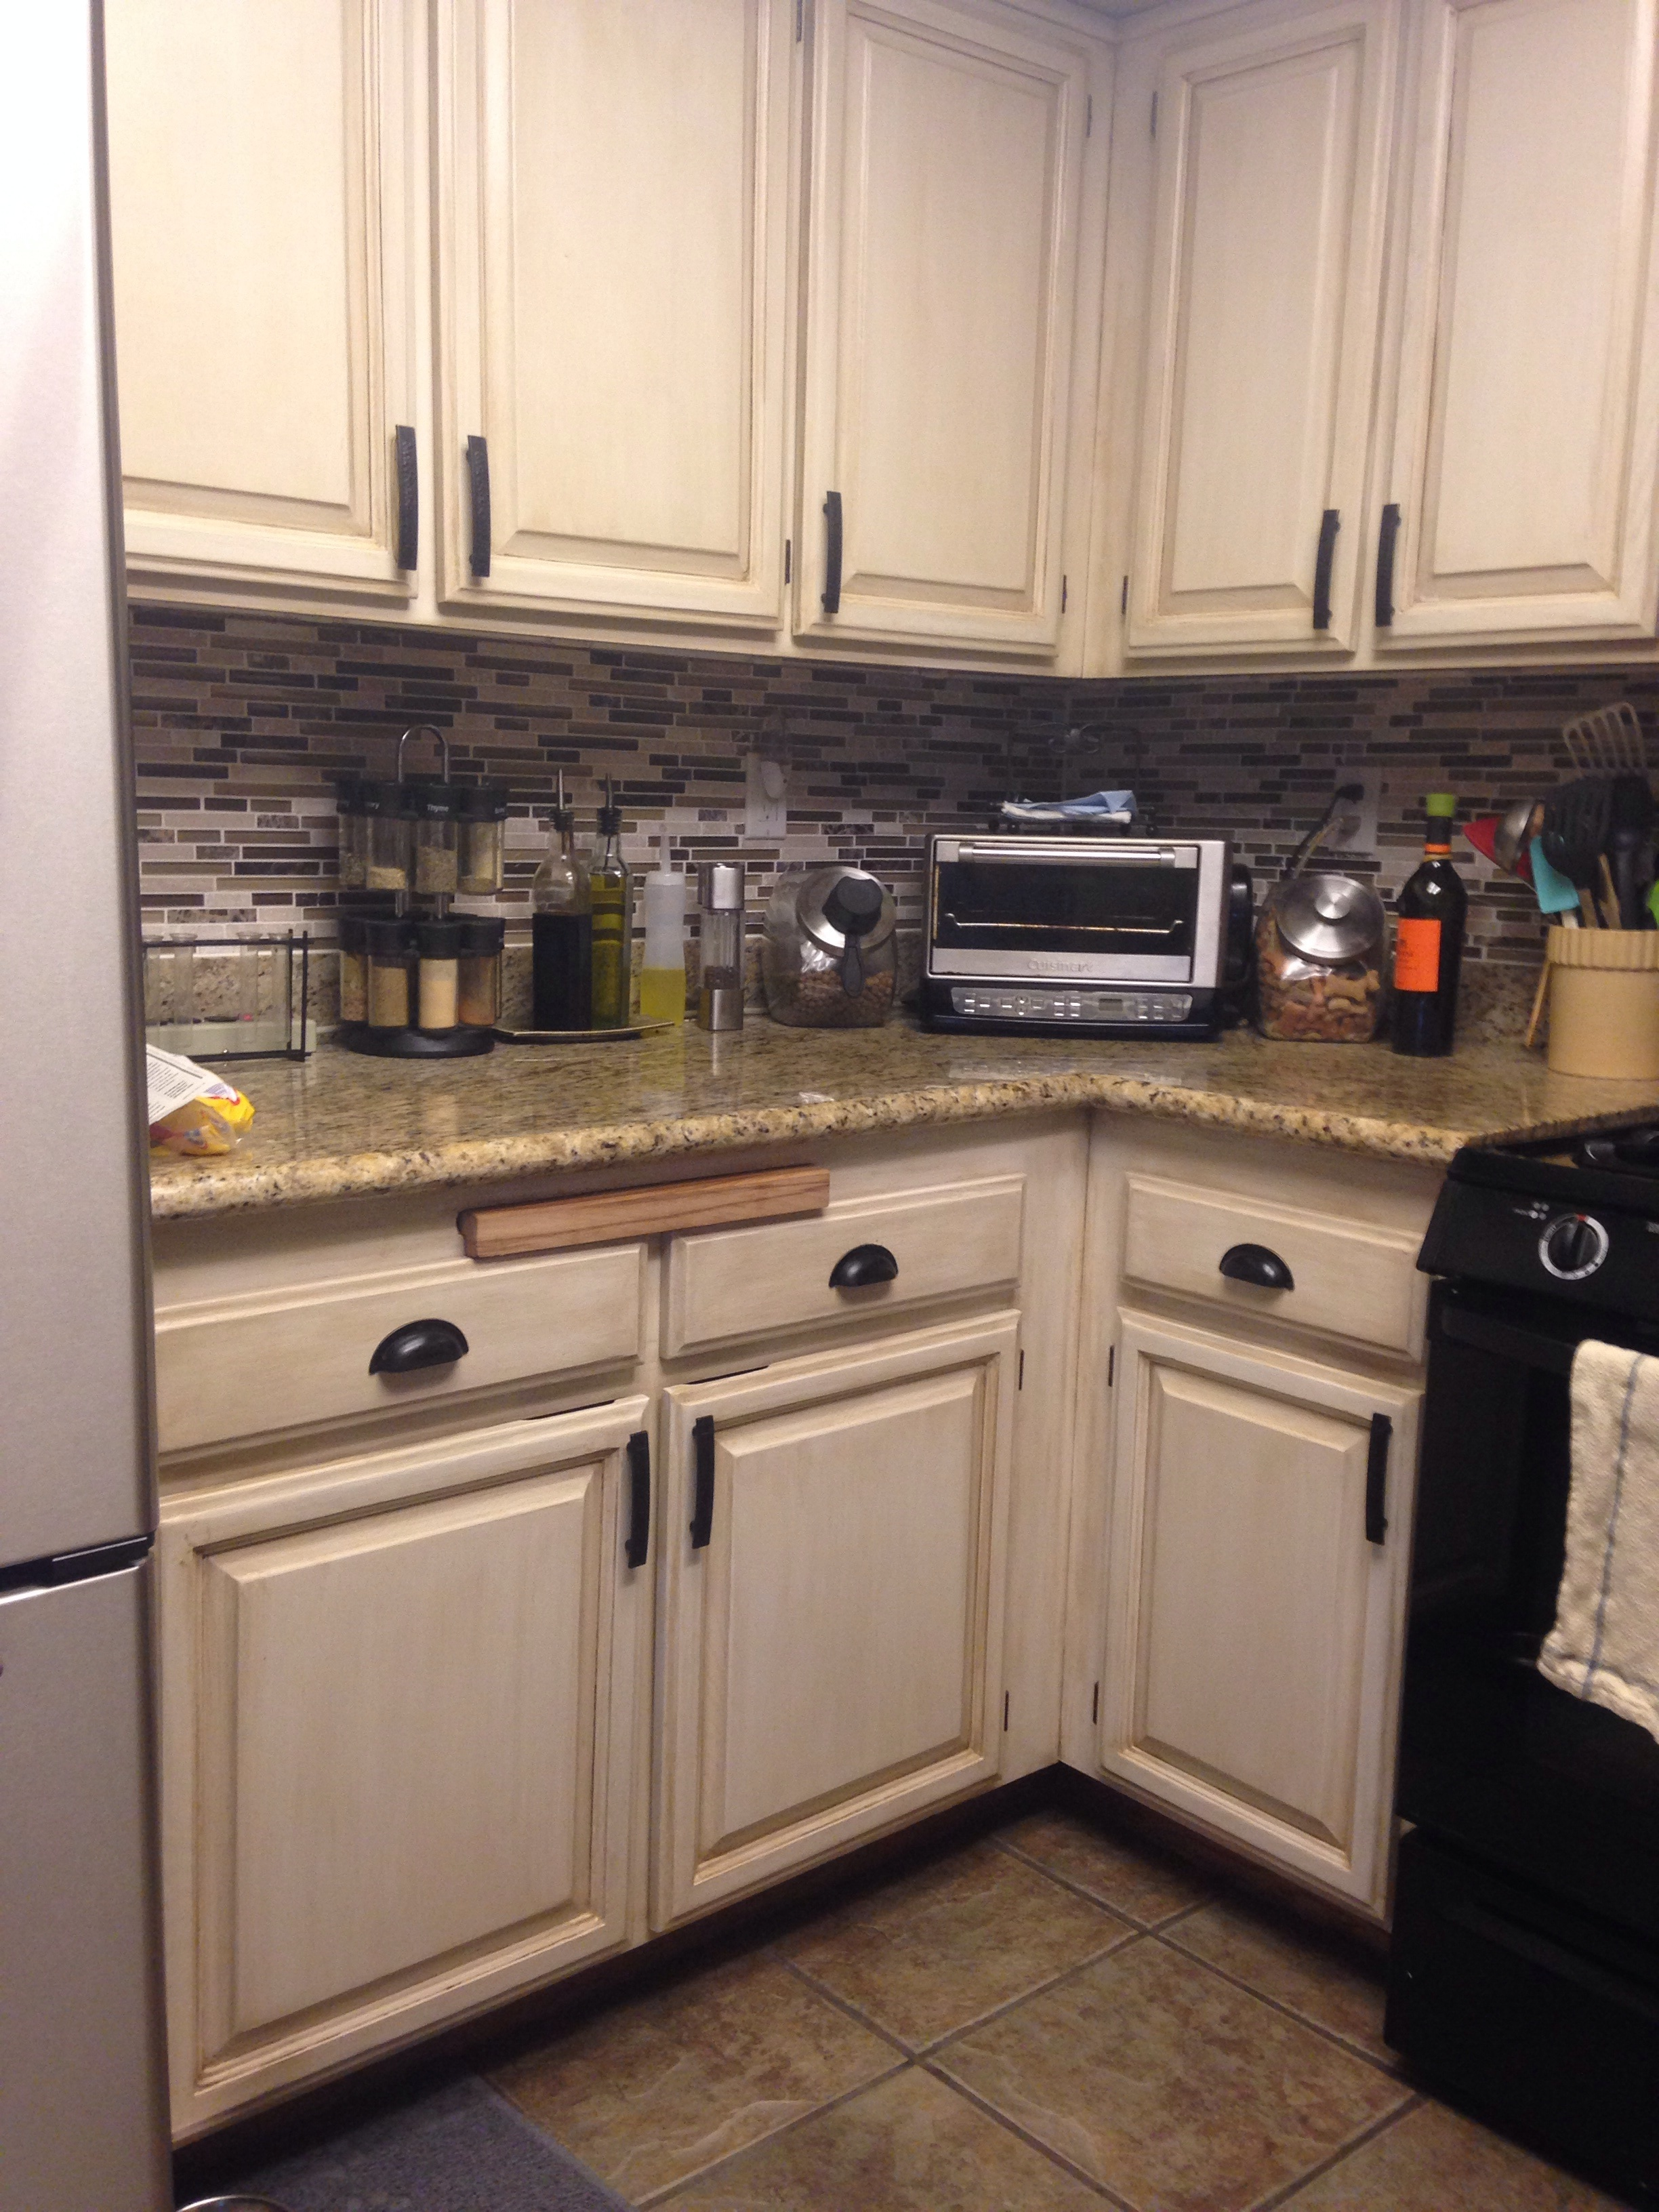 Remodelaholic diy refinished and painted cabinet reviews Redo my kitchen